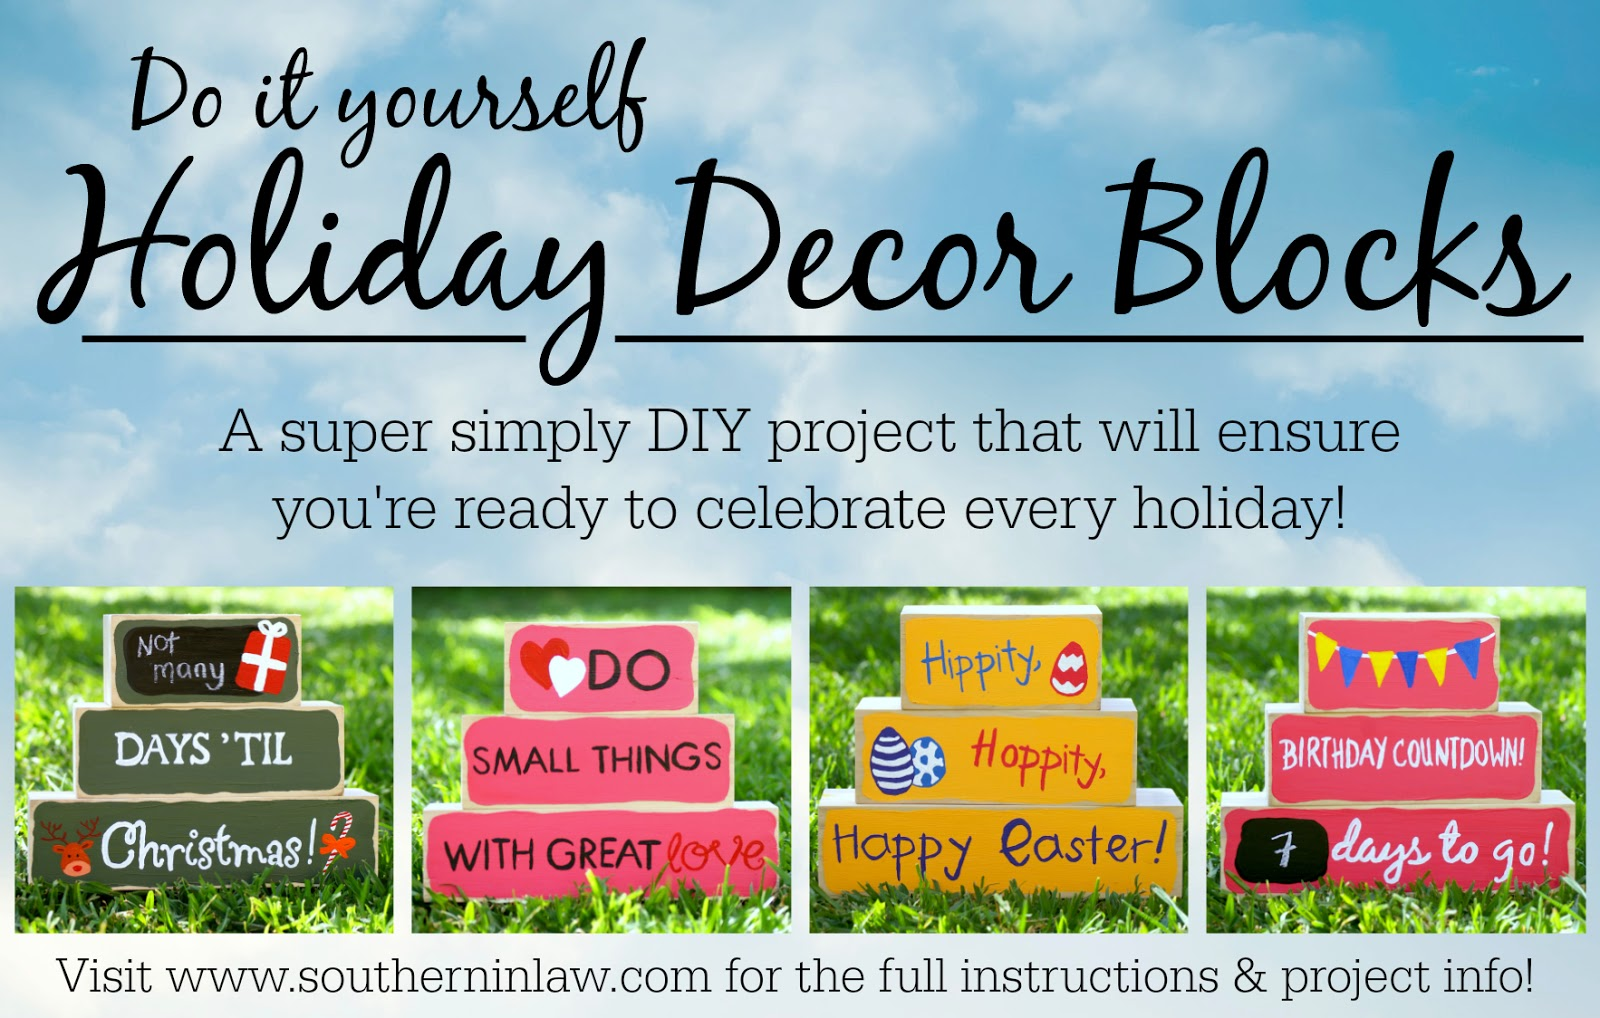 Southern in law diy holiday decor blocks do it yourself holiday decor blocks diy project solutioingenieria Image collections